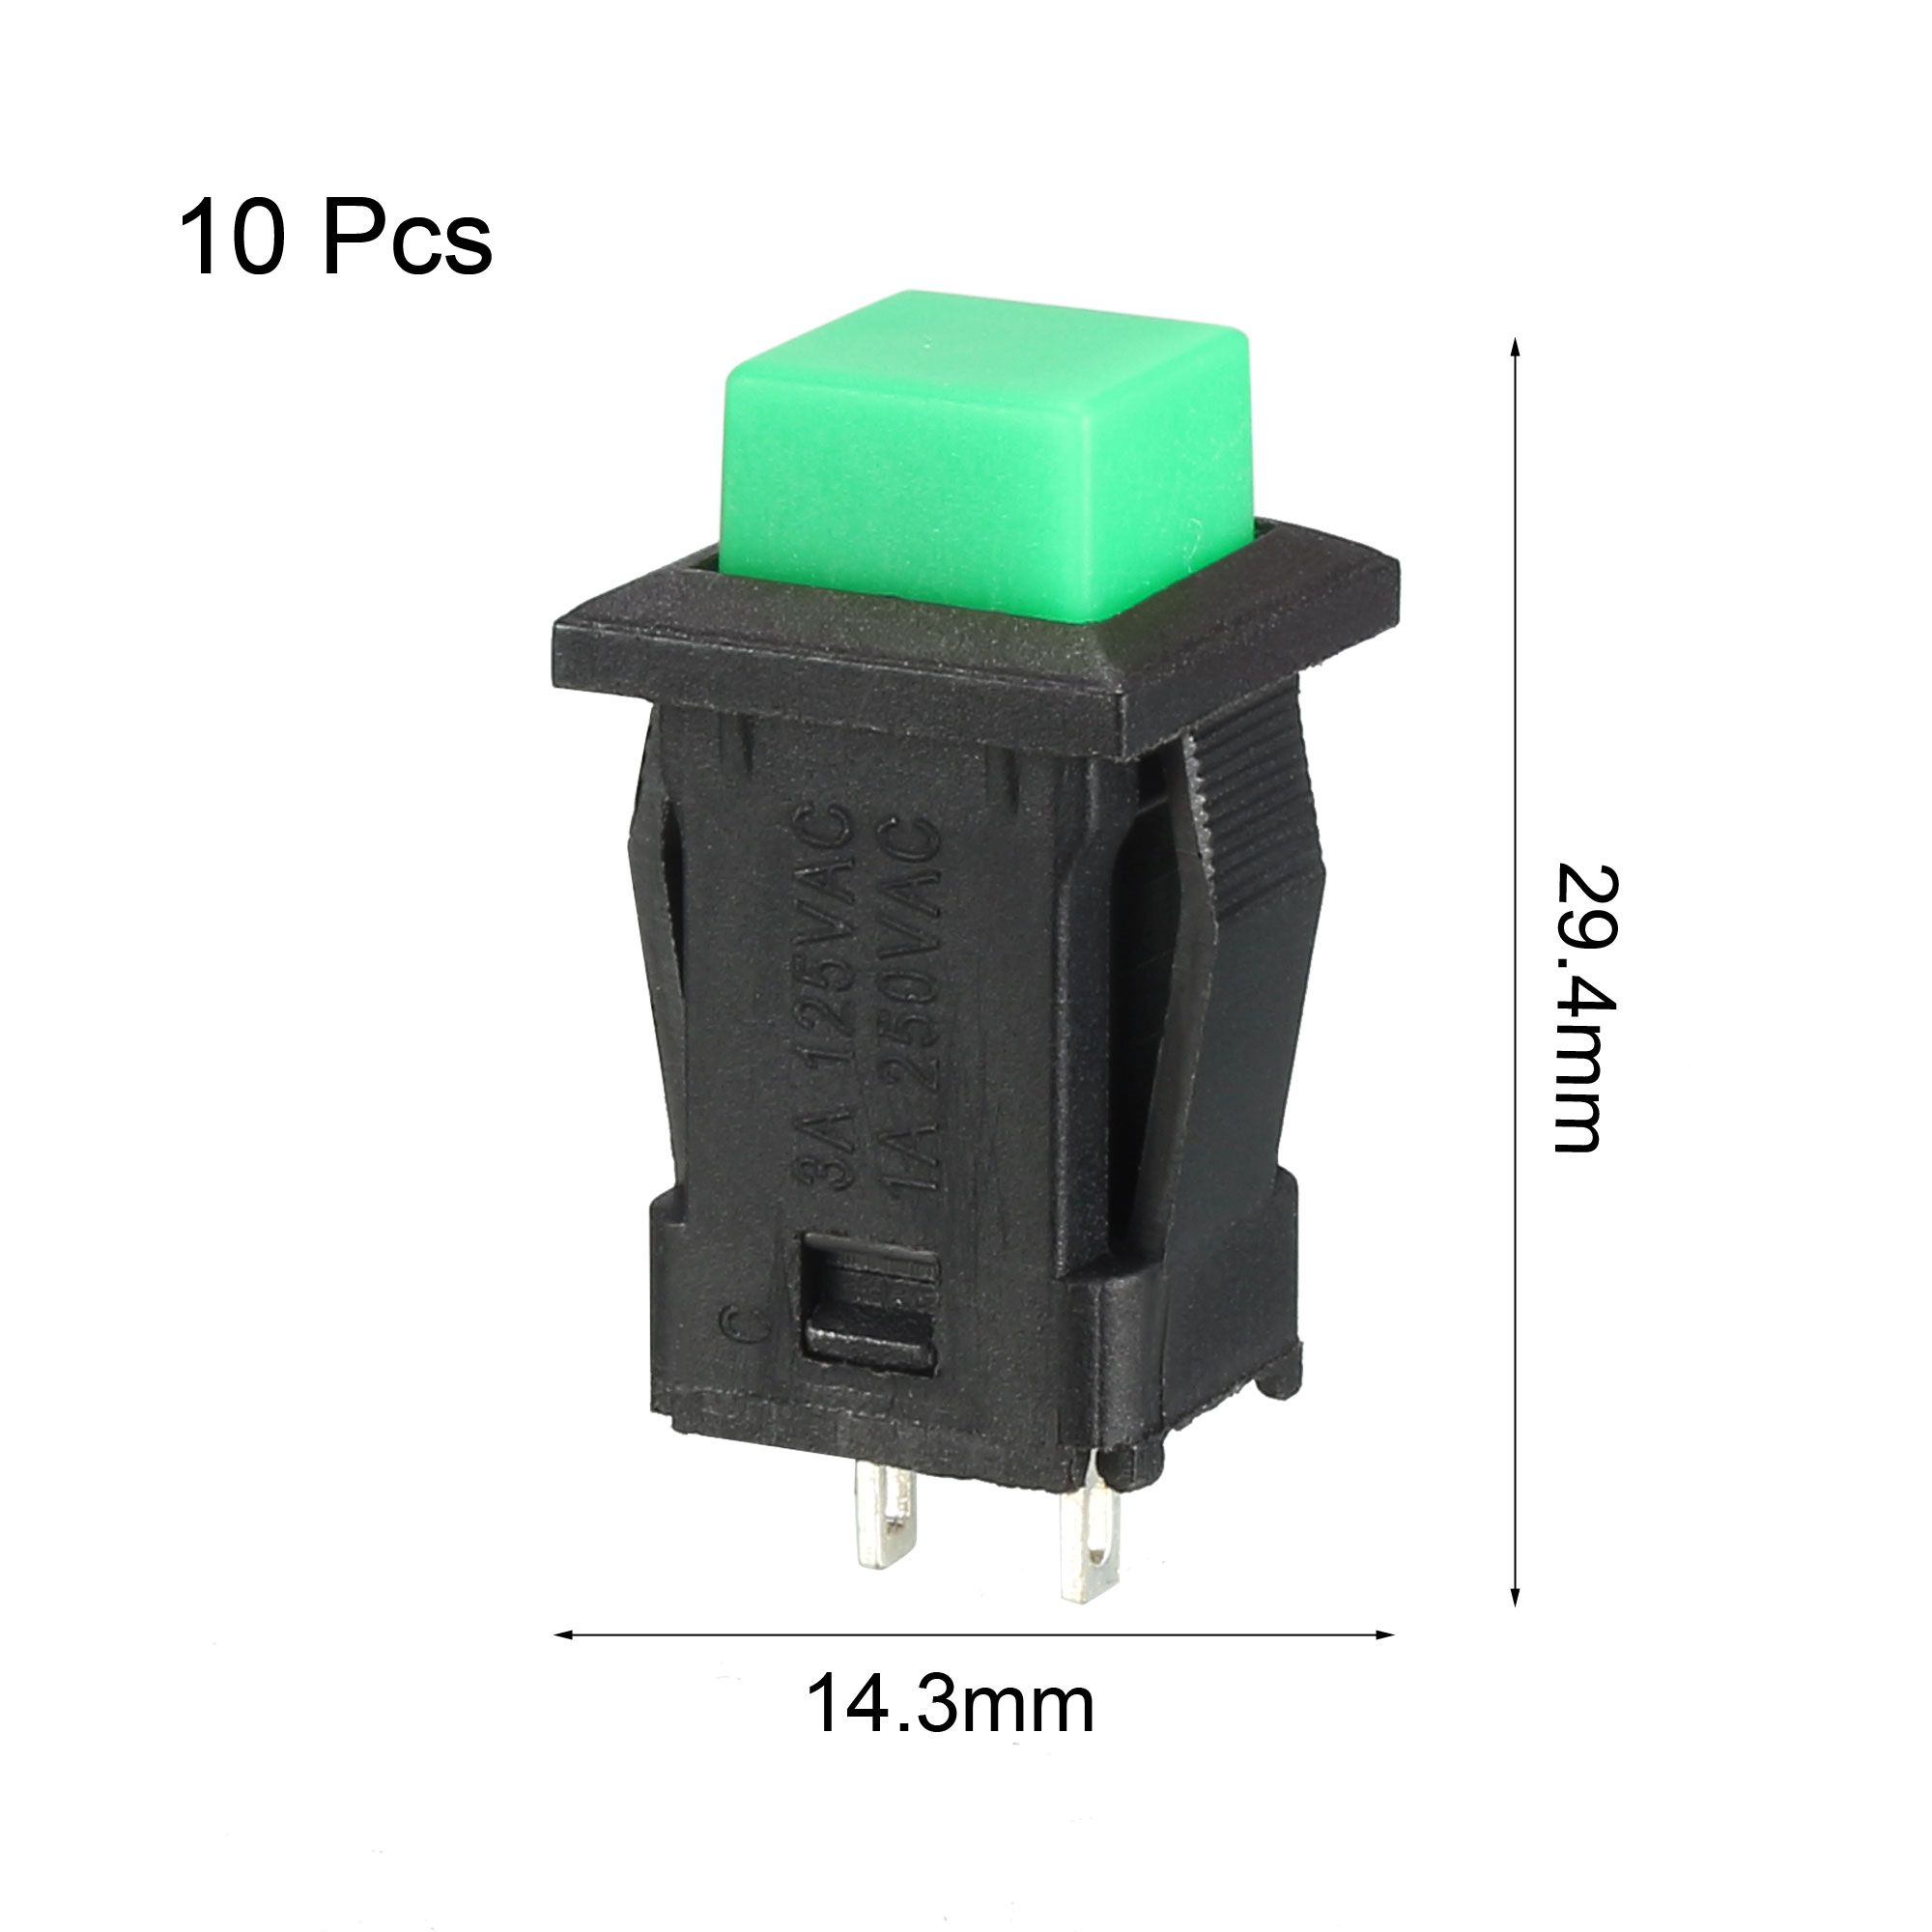 12mm Mounting Hole Green Square Latching Push Button Switch SPST NO 10pcs - image 1 of 4